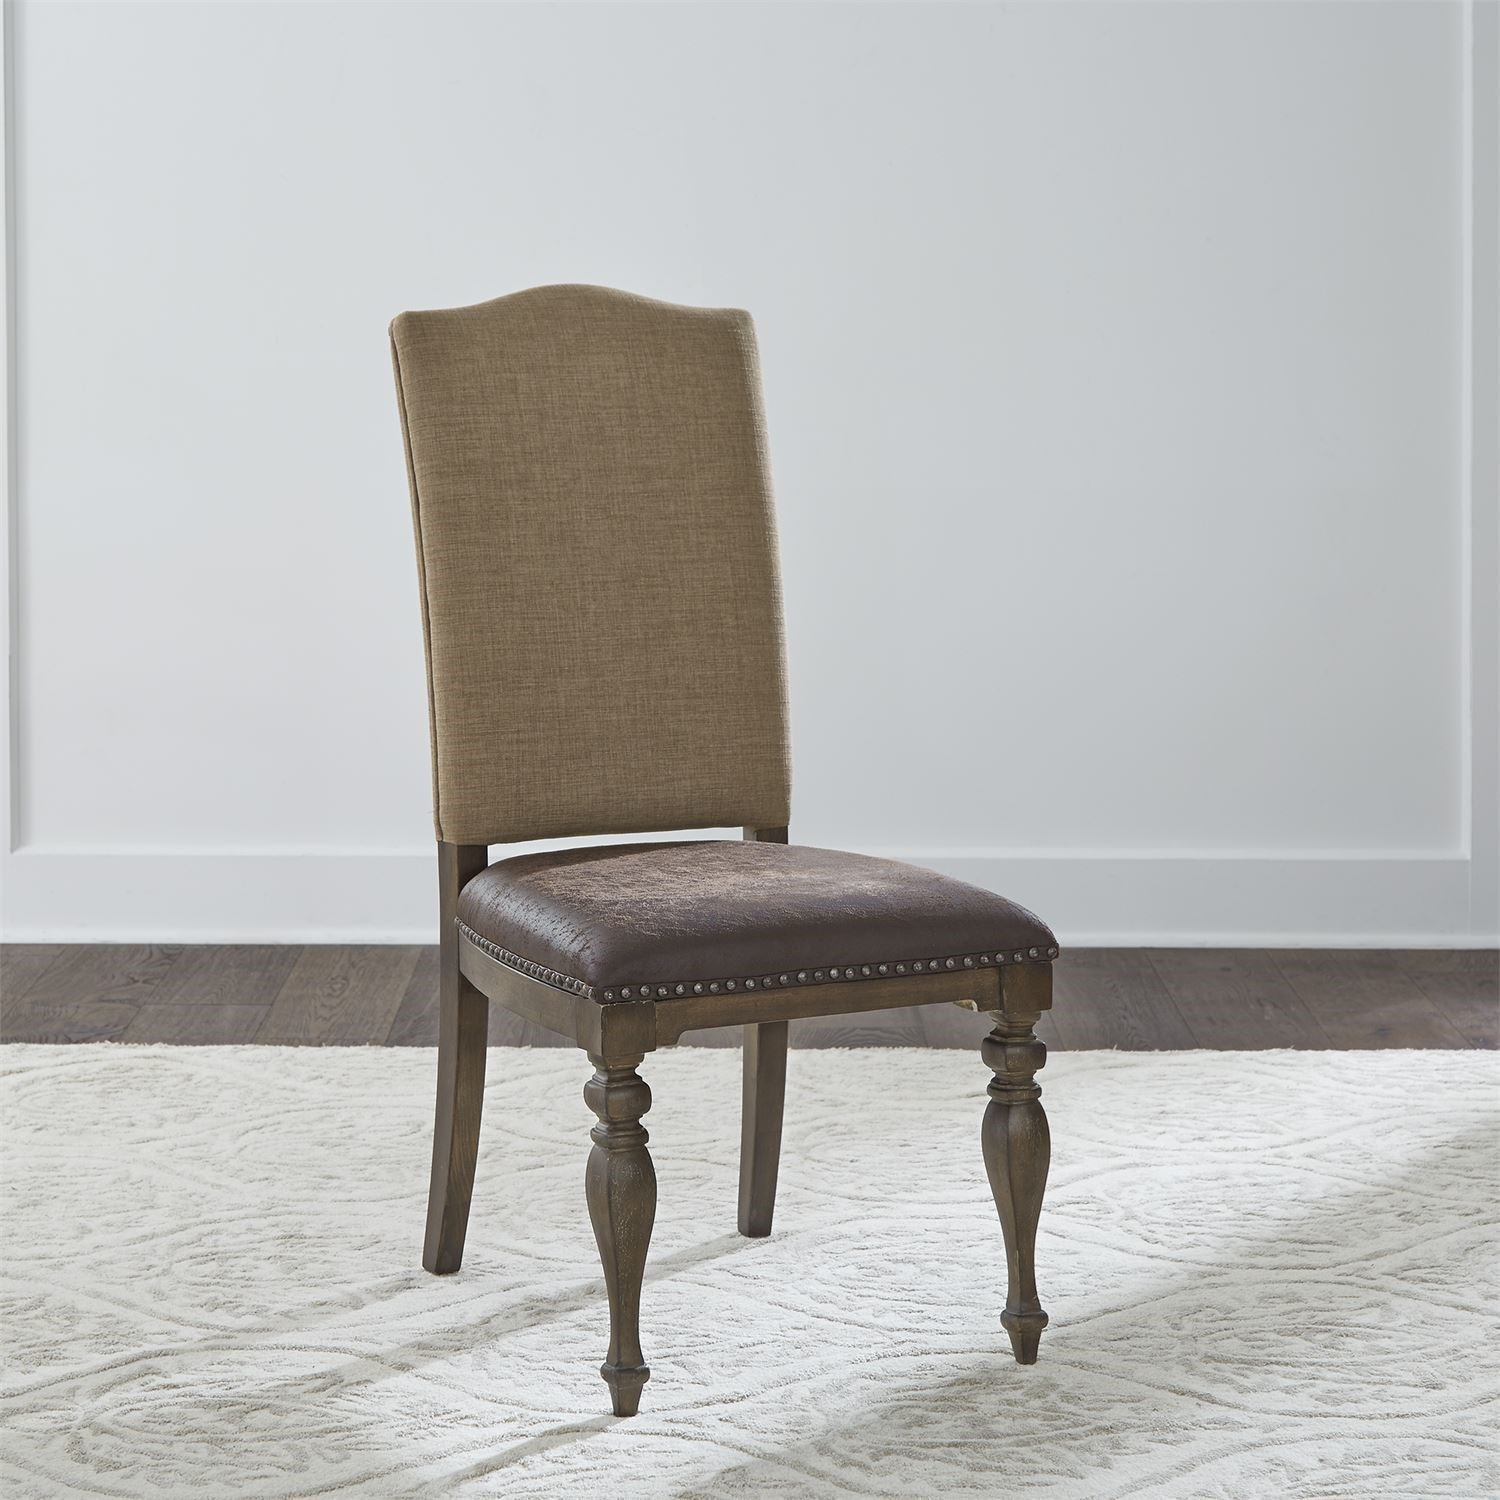 Relaxed Vintage Upholstered Side Chair with Nailhead Trim